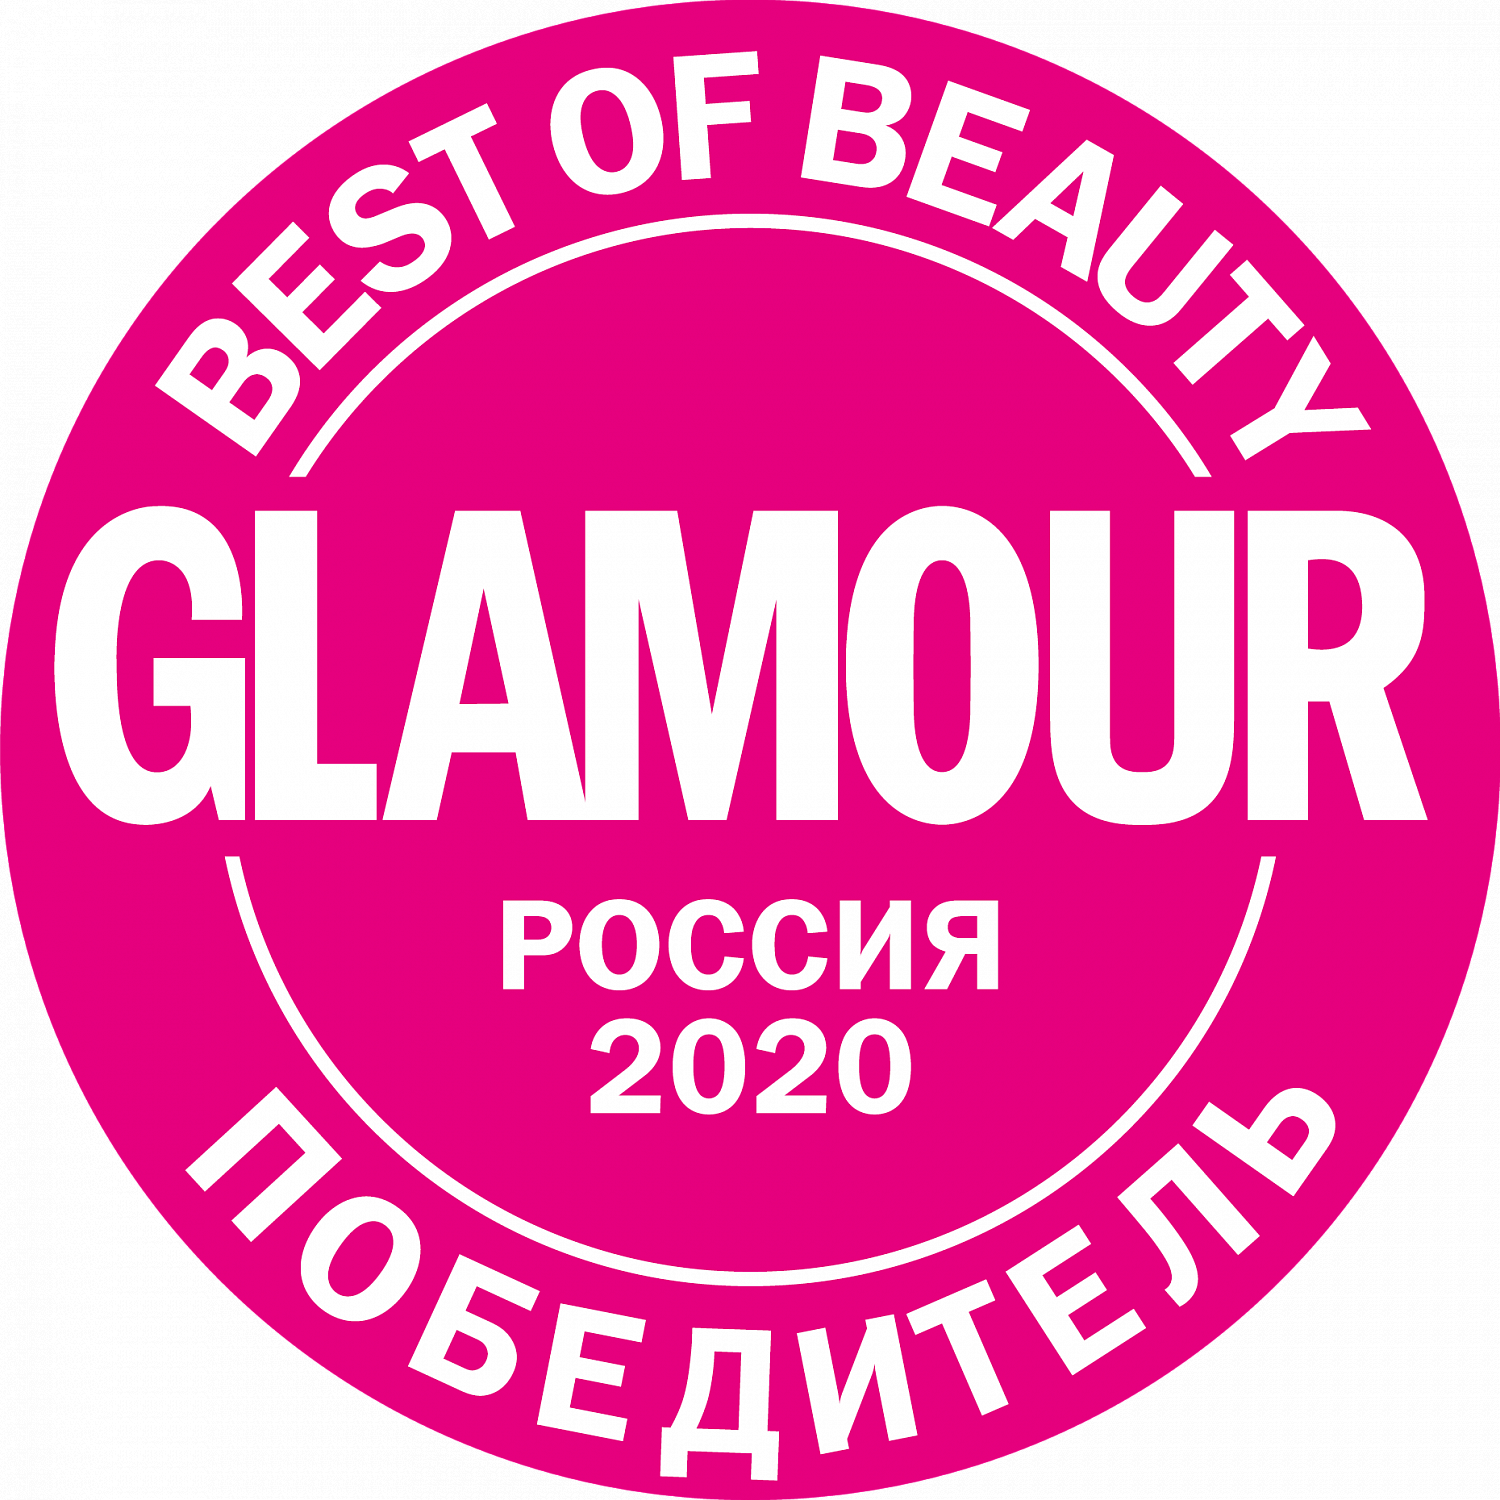 Glamour best of beauty 2020